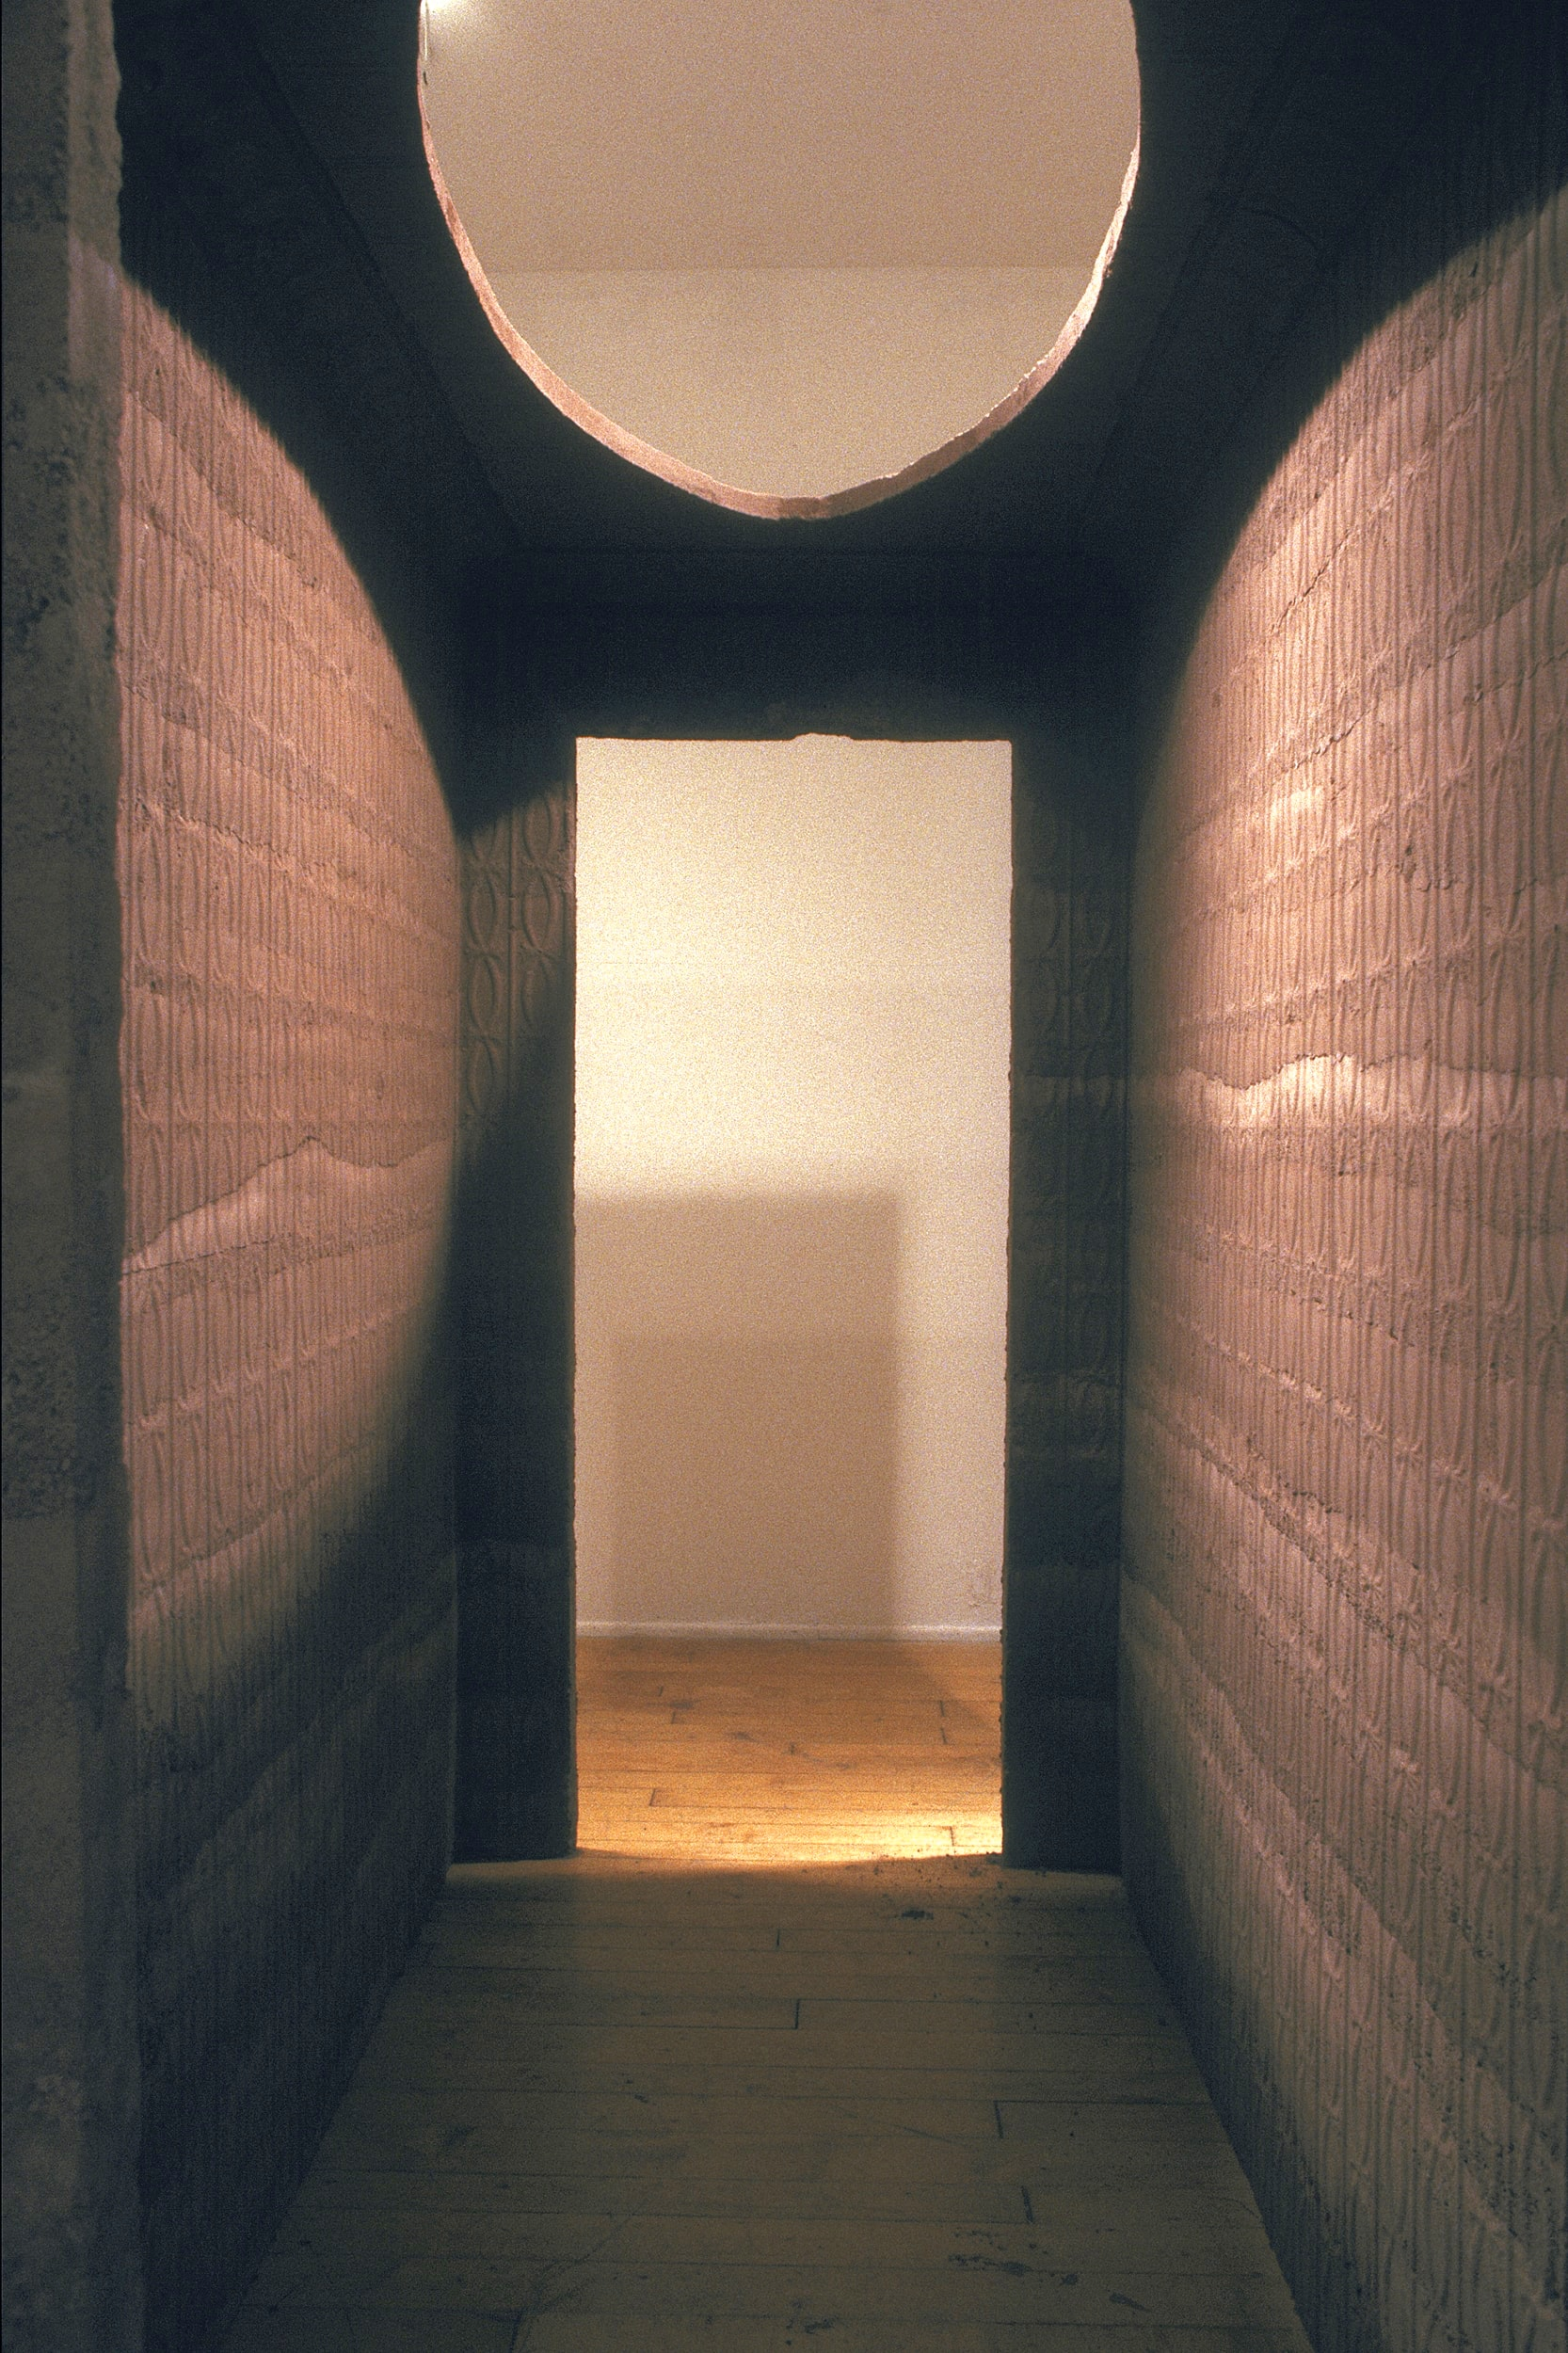 Earth Room (installation view)